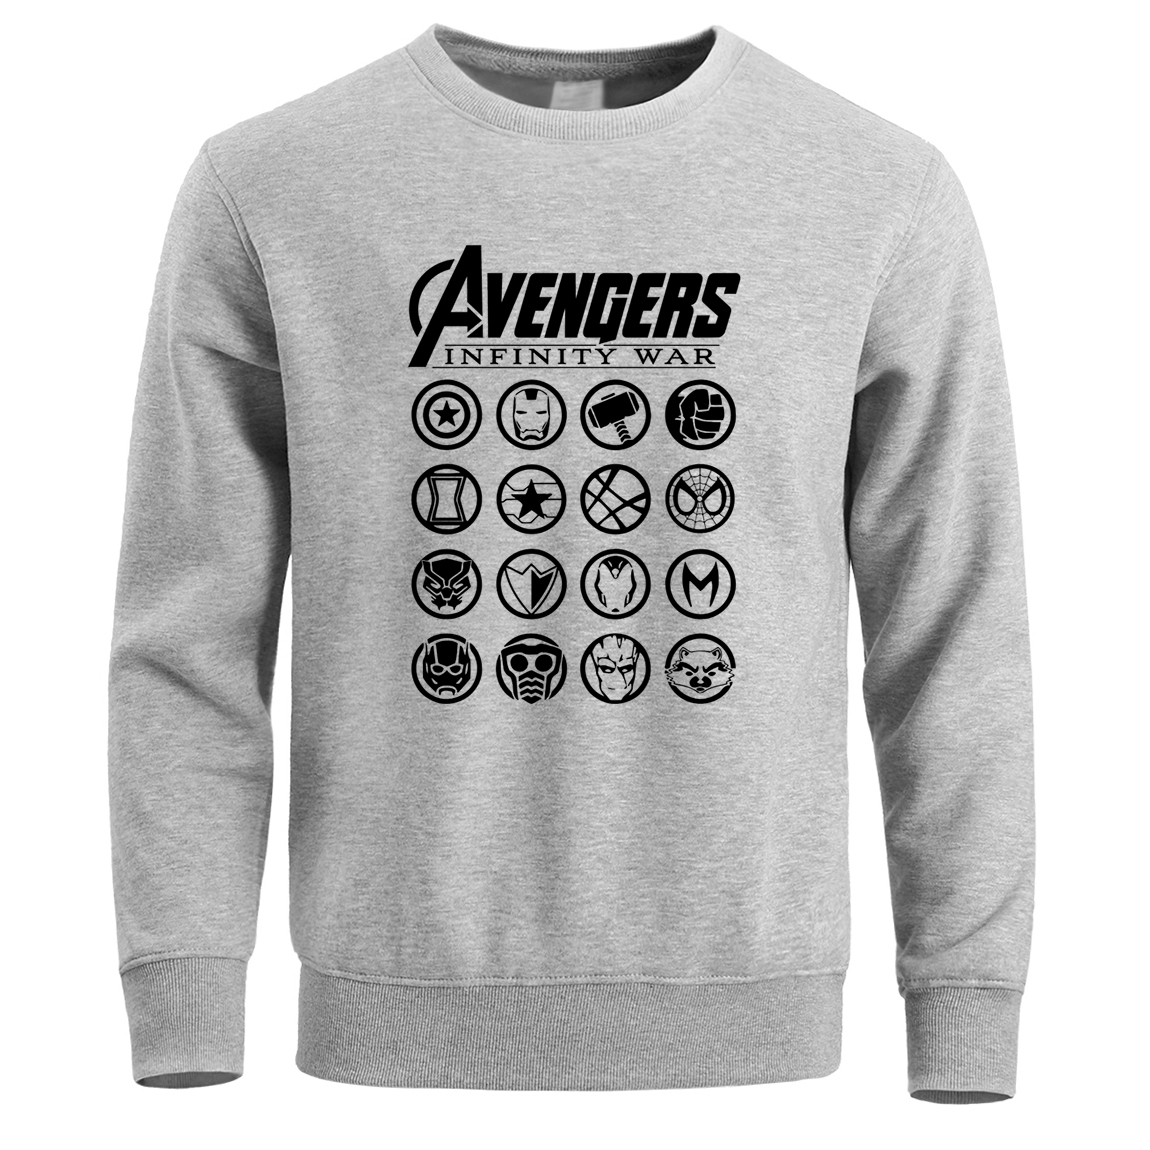 The Avengers Superhero Hoodies Sweatshirt Hoodie Men Iron Man Captain America Thor Hulk Black Widow Pullover Warm Crewneck Hoody